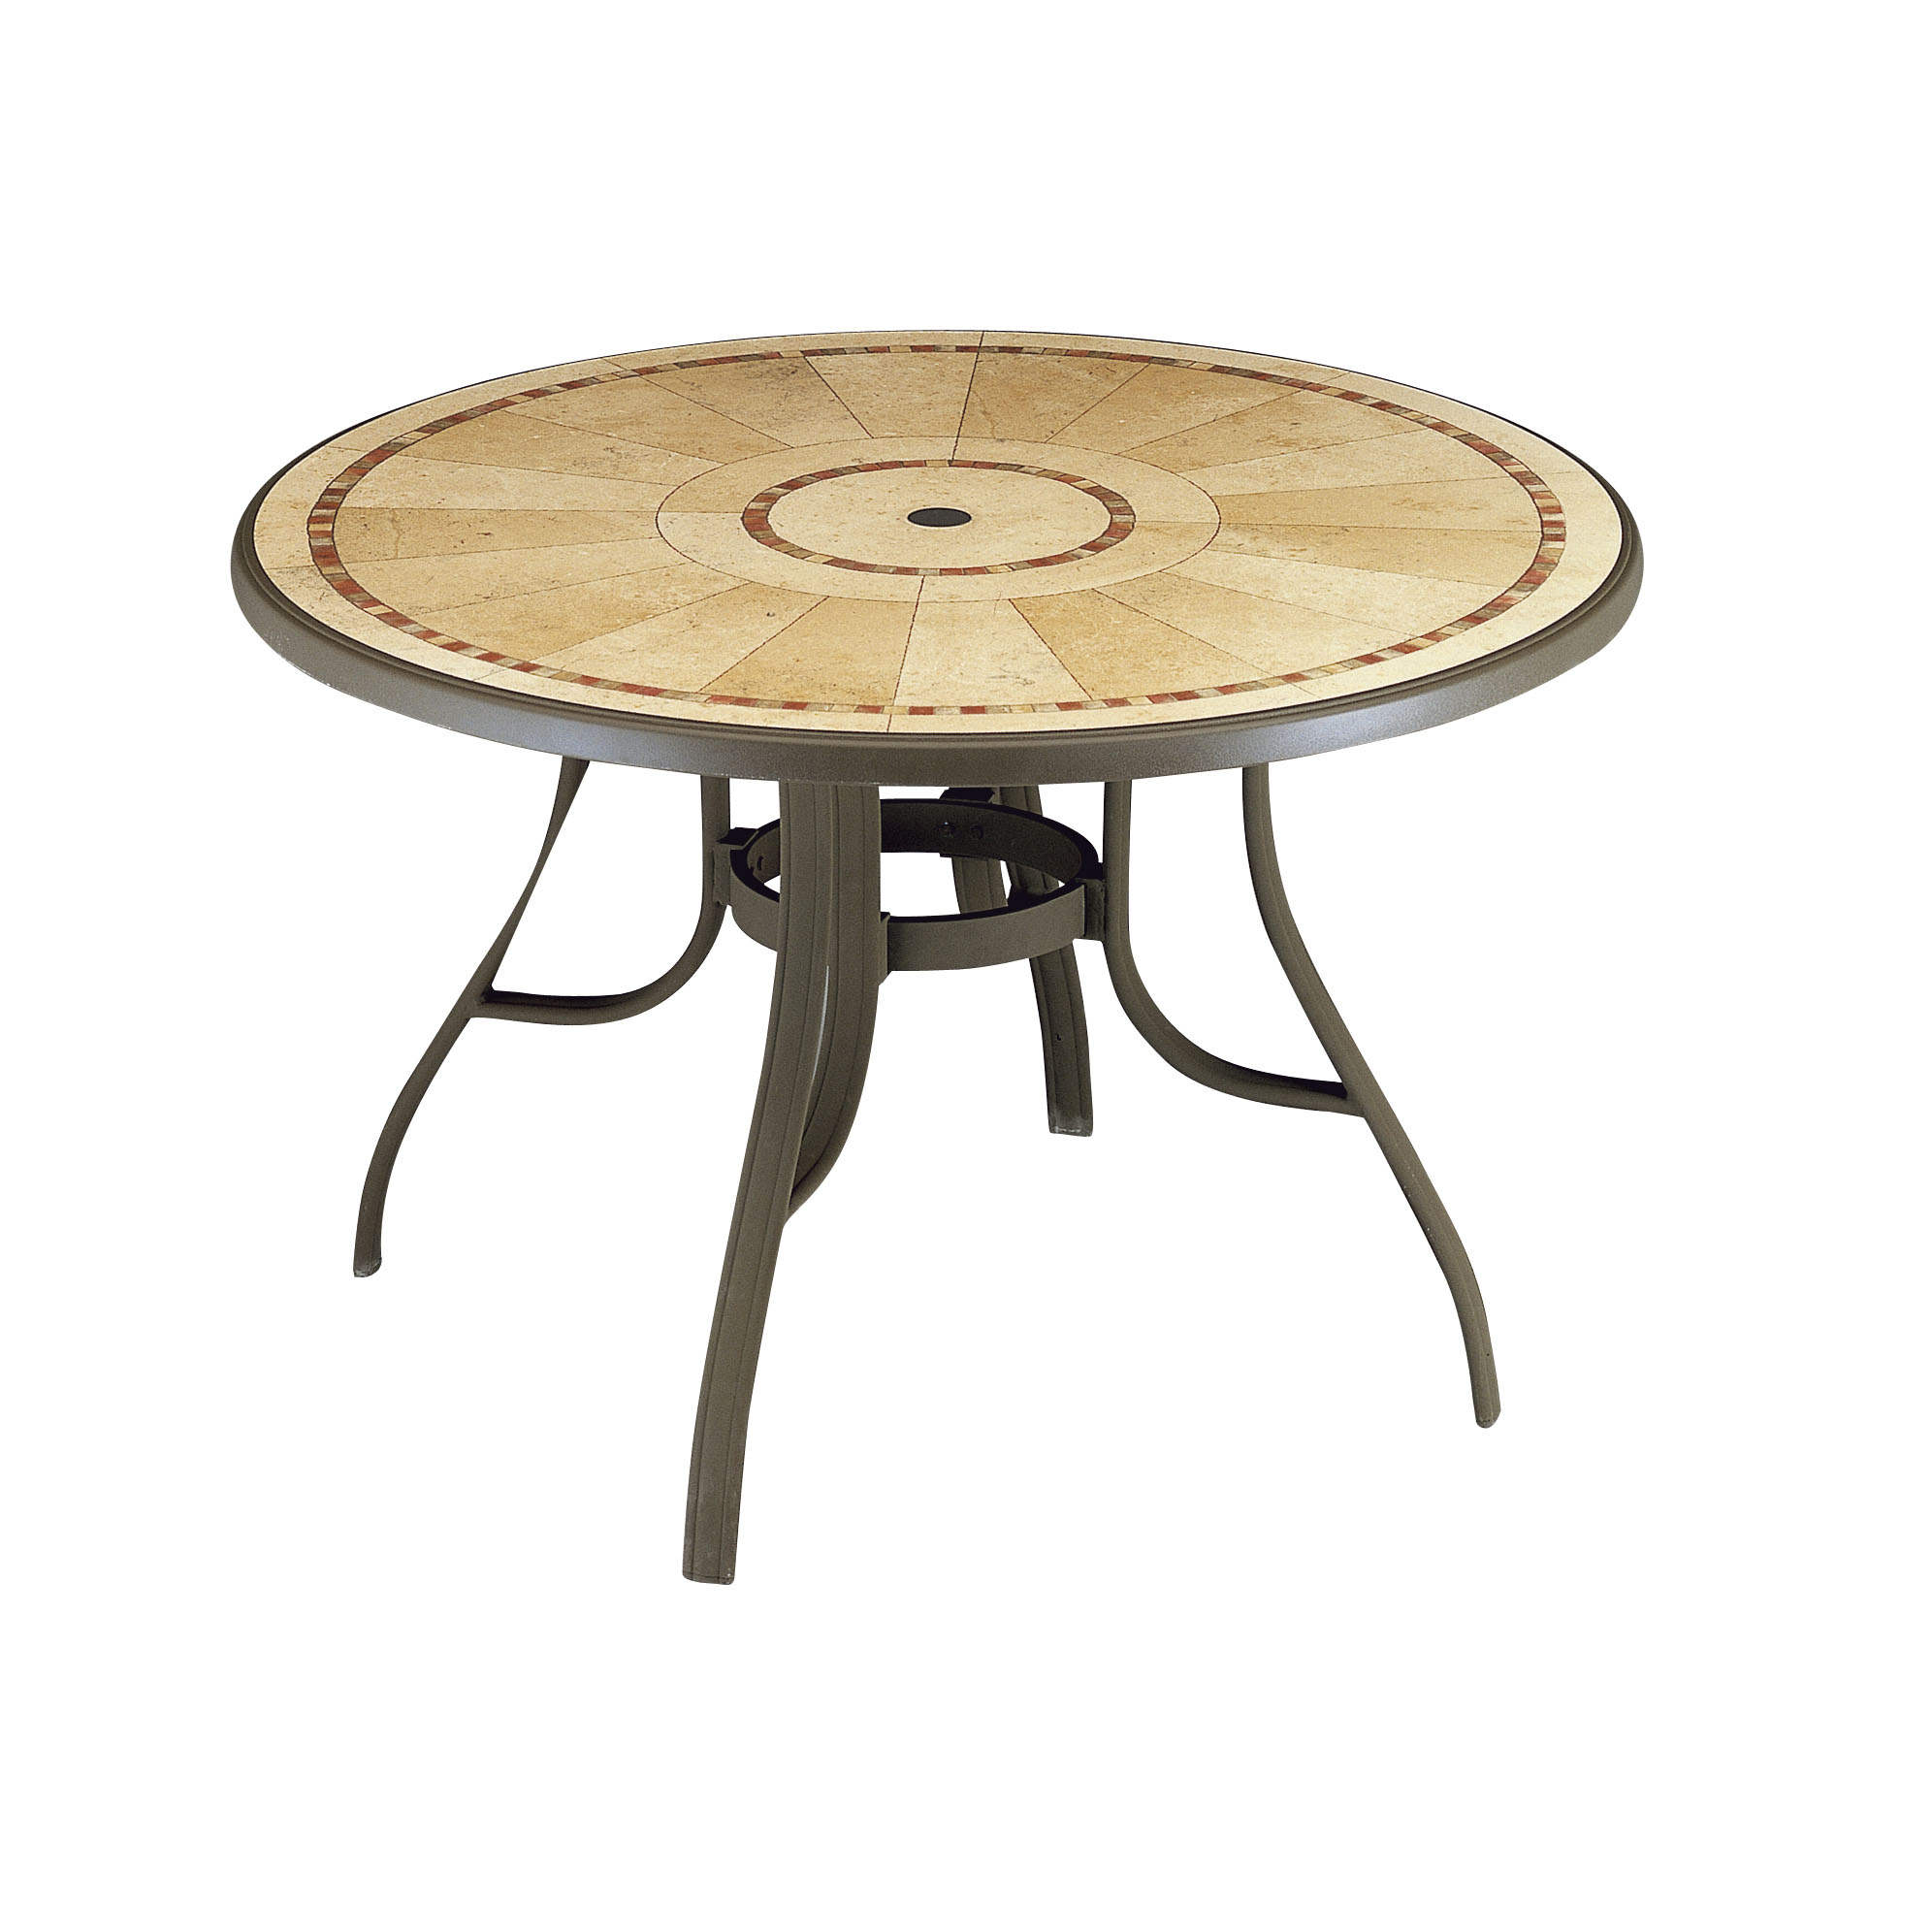 Louisiana Pietra Decor 48 In Round Dining Table With Metal Legs